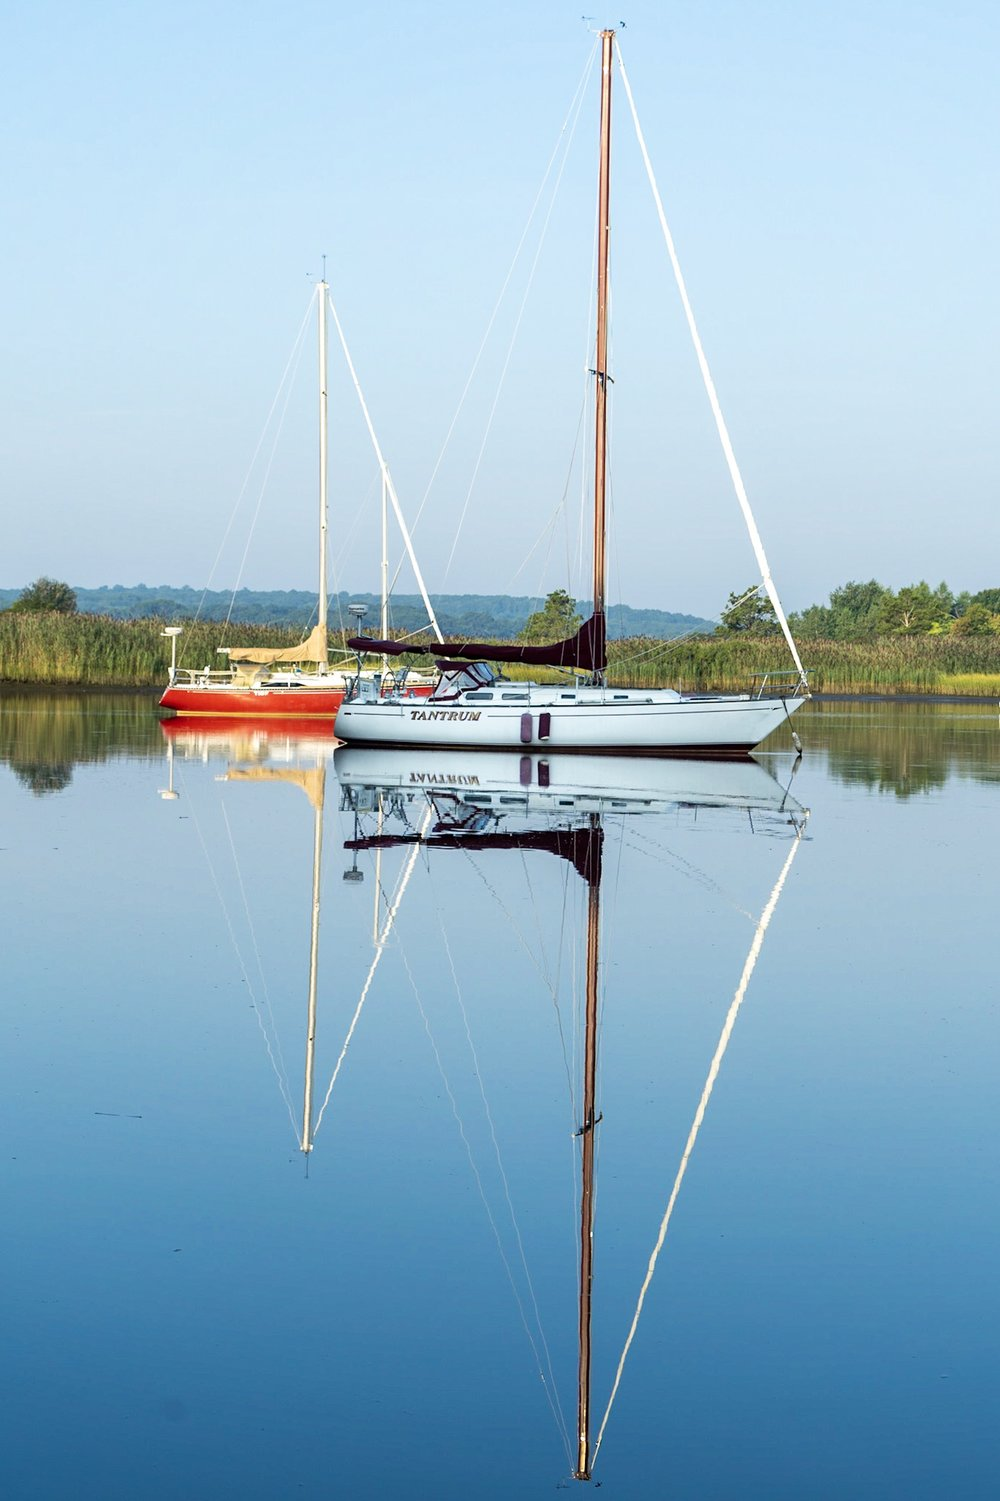 Sailboat reflections on the Connecticut River